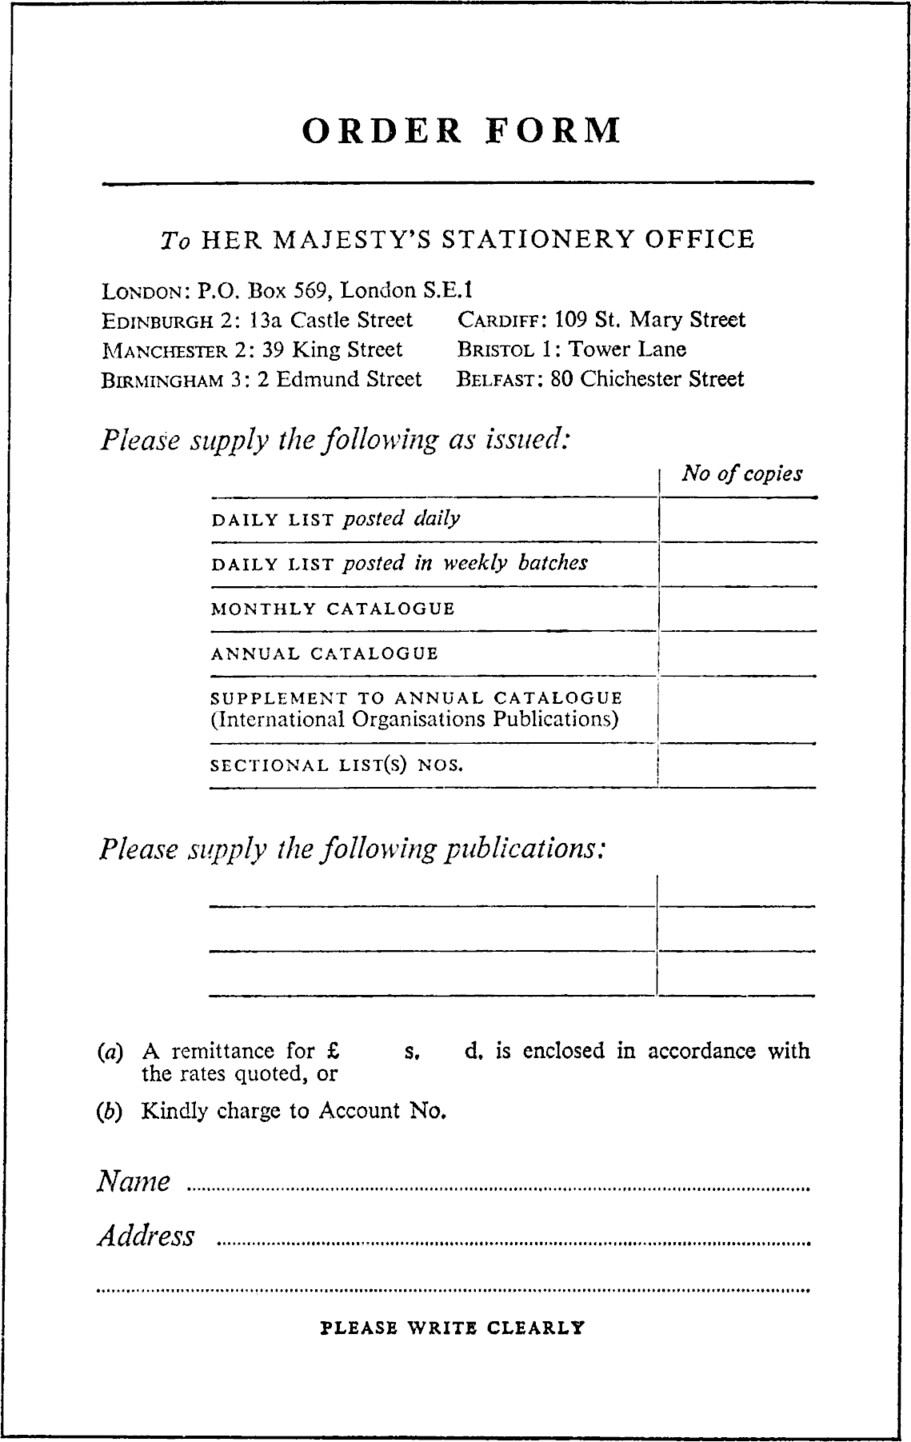 Form with title ORDER FORM. To HER MAJESTY'S STATIONERY OFFICE. London: P.O. Box 569, London S.E.1. EDINBURGH 2: 13a Castle Street. CARDIFF: 109 St. Mary Street. MANCHESTER 2: 39 King Street. BRISTOL 1: Tower Lane. BIRMINGHAM 3: 2 Edmund Street. BELFAST: 80 Chichester Street. Please supply the following as issued: Blank table with two columns. First column row headings: DAILY LIST posted daily, DAILY LIST posted in weekly batches, MONTHLY CATALOGUE, ANNUAL CATALOGUE, SUPPLEMENT TO ANNUAL CATALOGUE (International Organisations Publications), SECTIONAL LIST(S) NOS., Second column No of copies. Please supply the following publications: Blank table with two columns for entries. (a) A remittance for £, blank field, s., blank field, d. is enclosed in accordance with the rates quoted, or (b) Kindly charge to Account No. Name, blank field. Address, blank field. PLEASE WRITE CLEARLY.